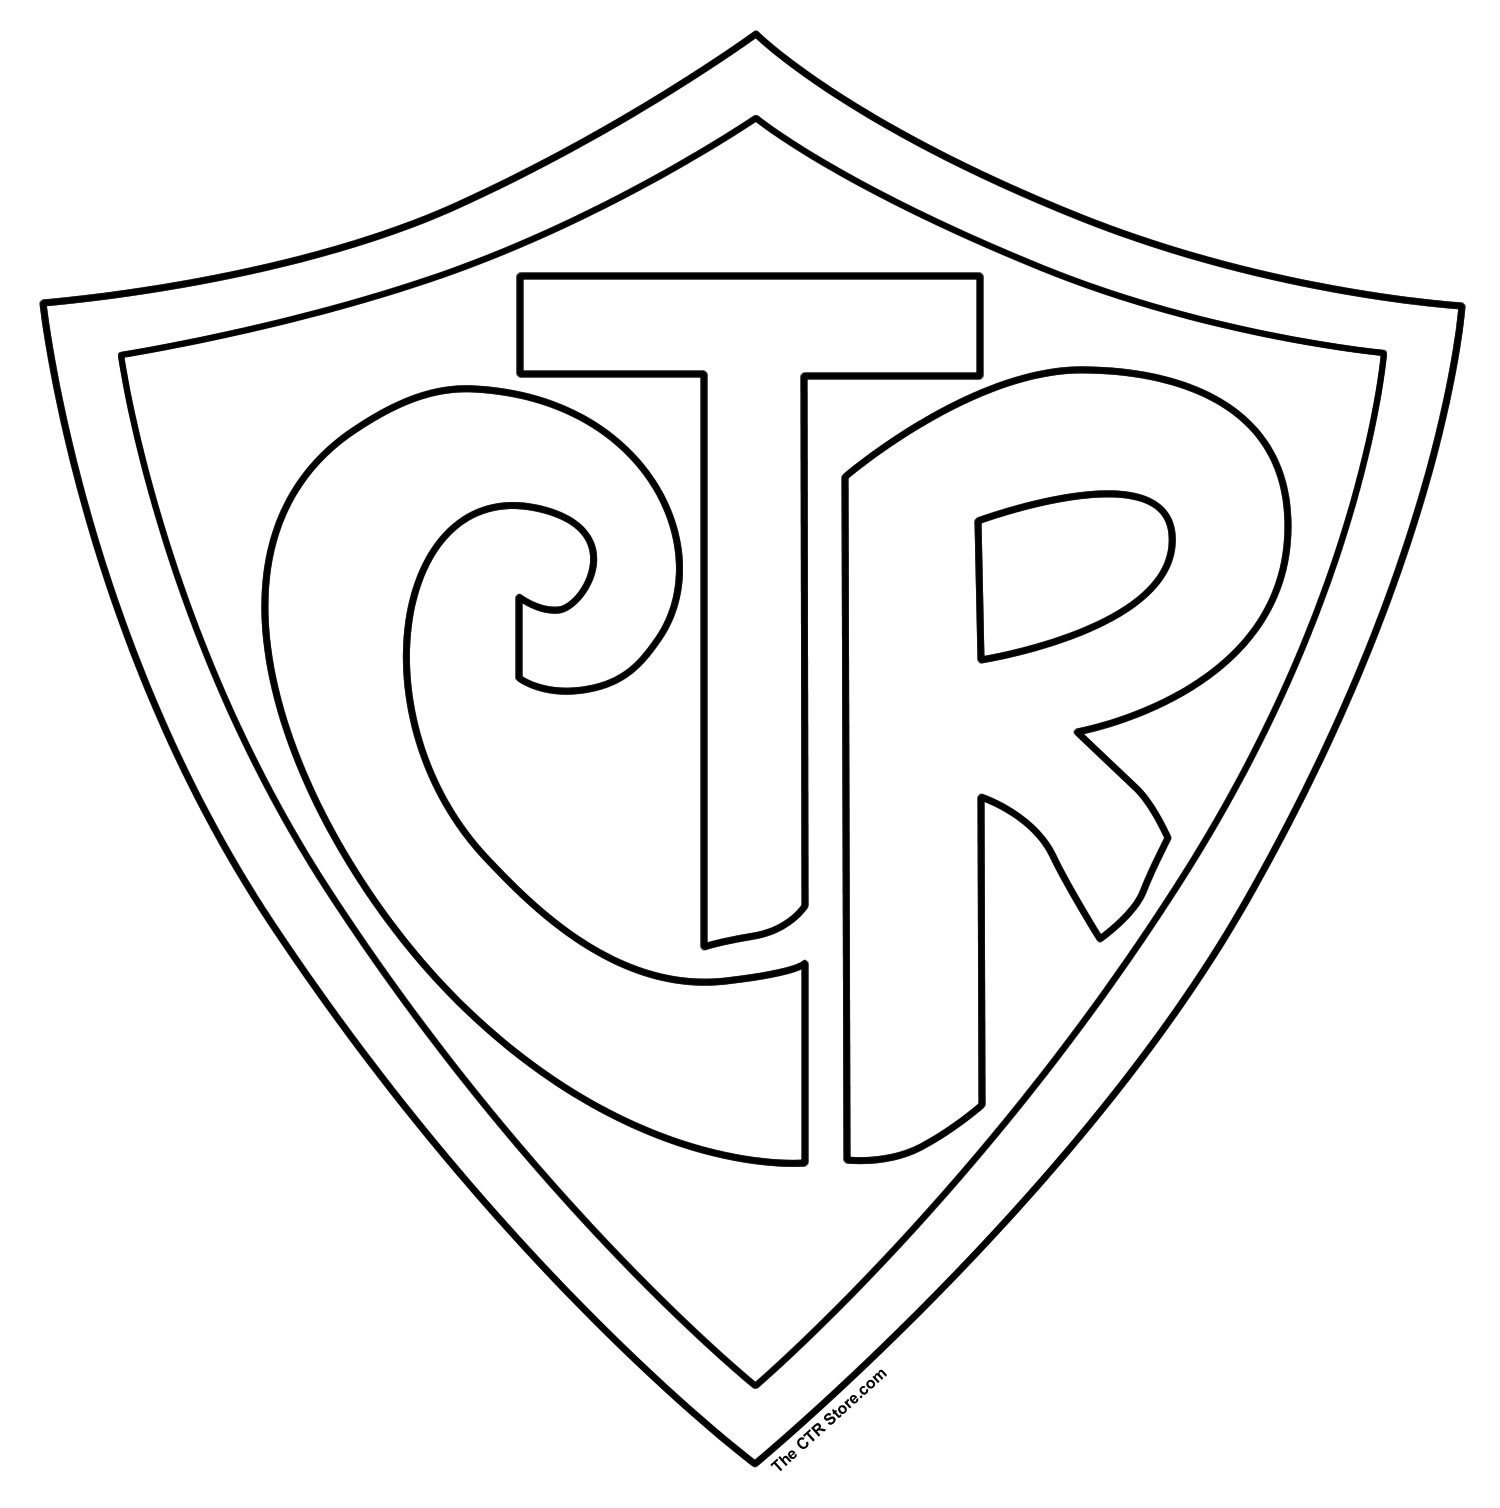 Ctr Clipart